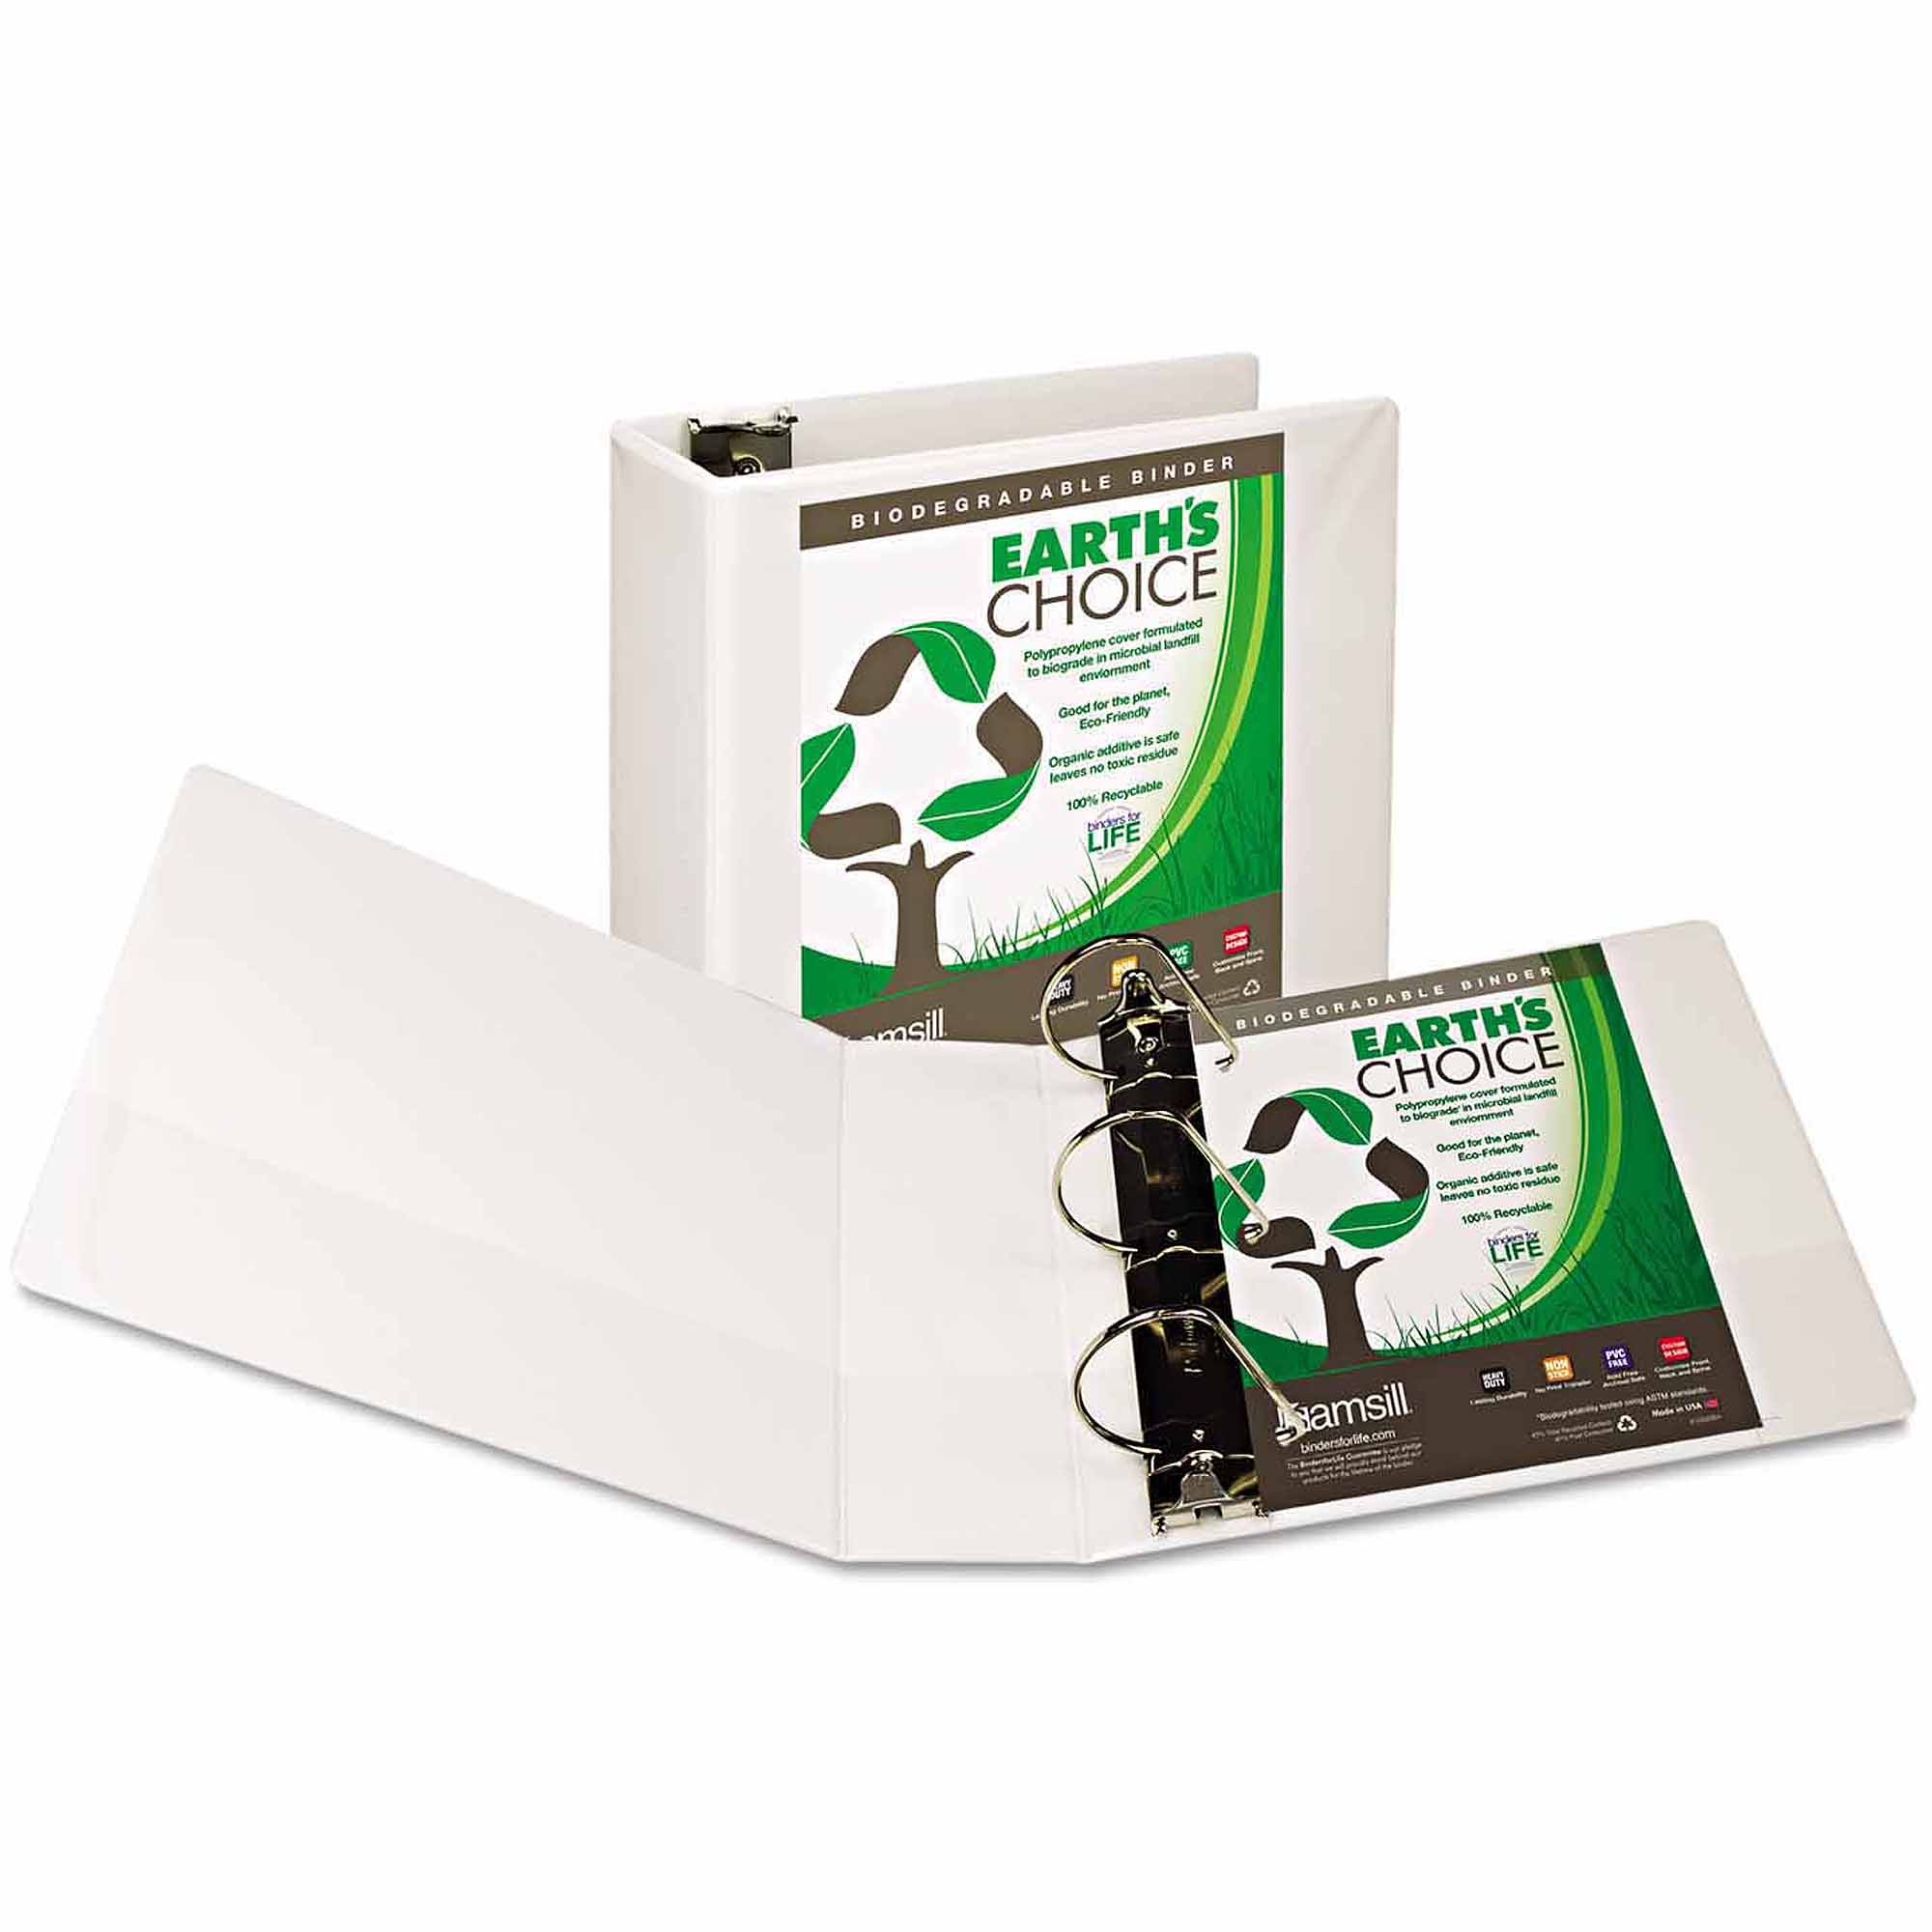 "Samsill Earth's Choice Biodegradable Angle-D Ring View Binder, 4"" Capacity, White"